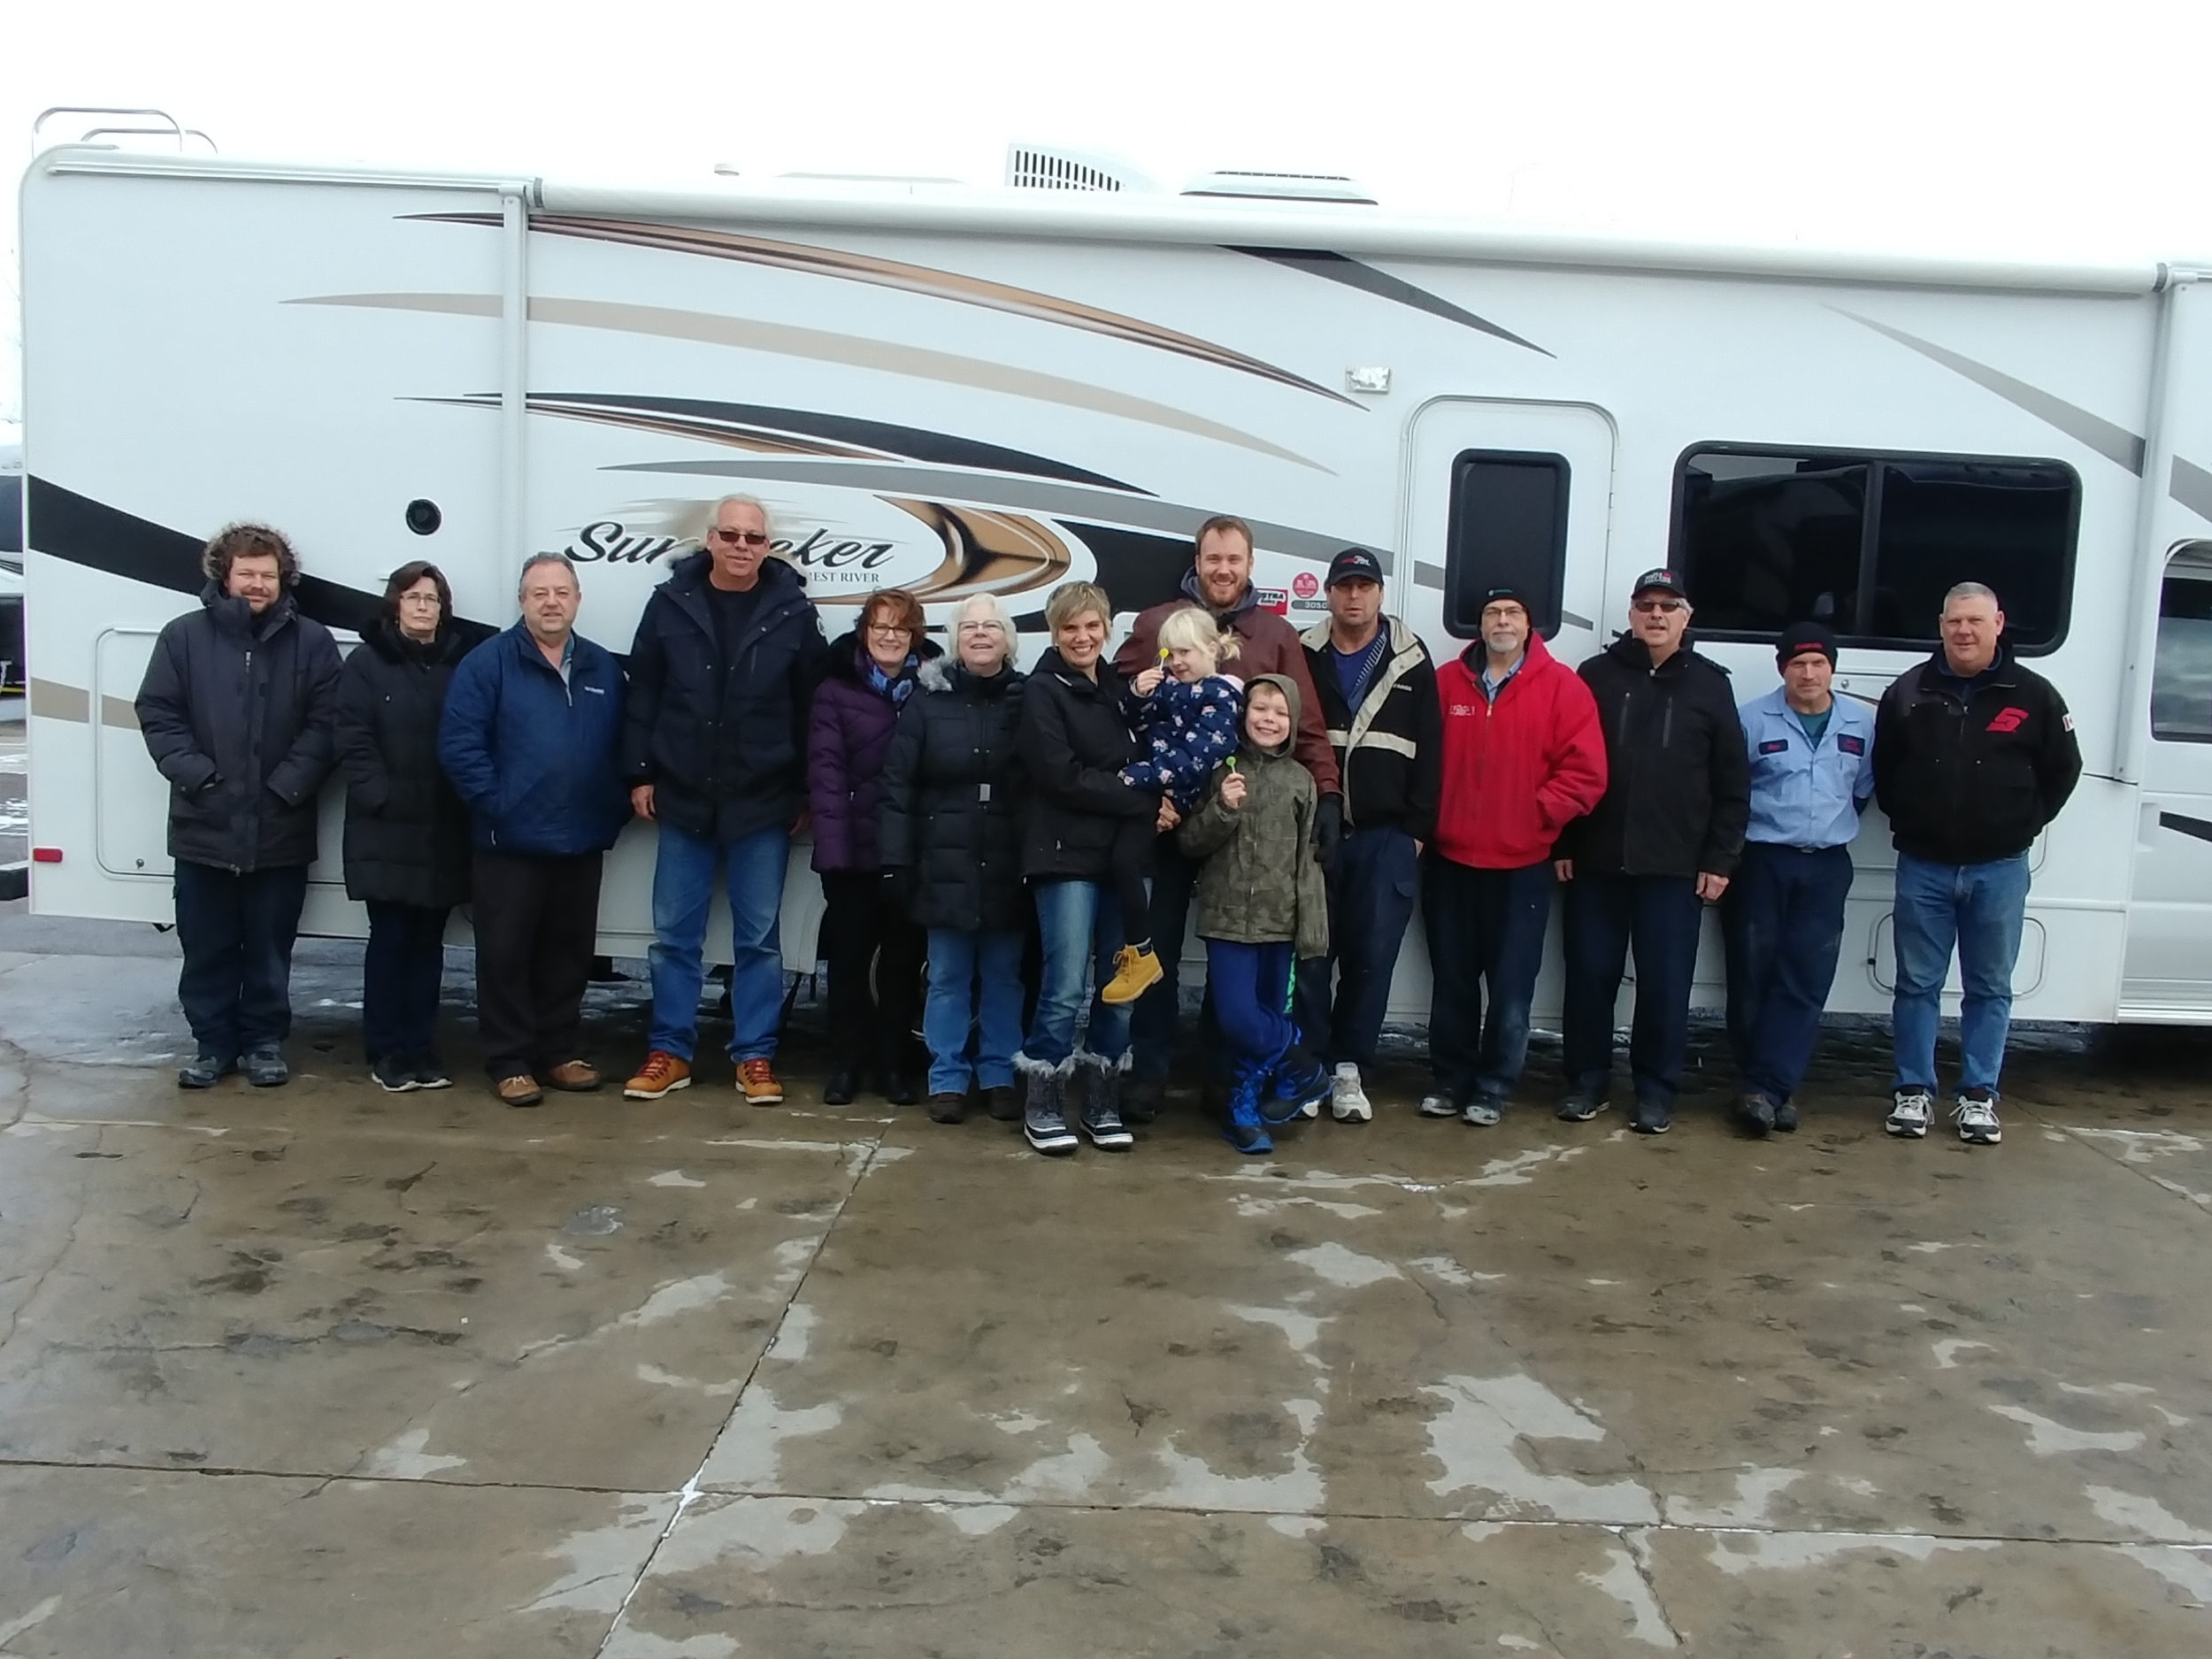 Thank you Hiemstra Trailer Sales - For your generous donation of Mabel for the use of the tour!